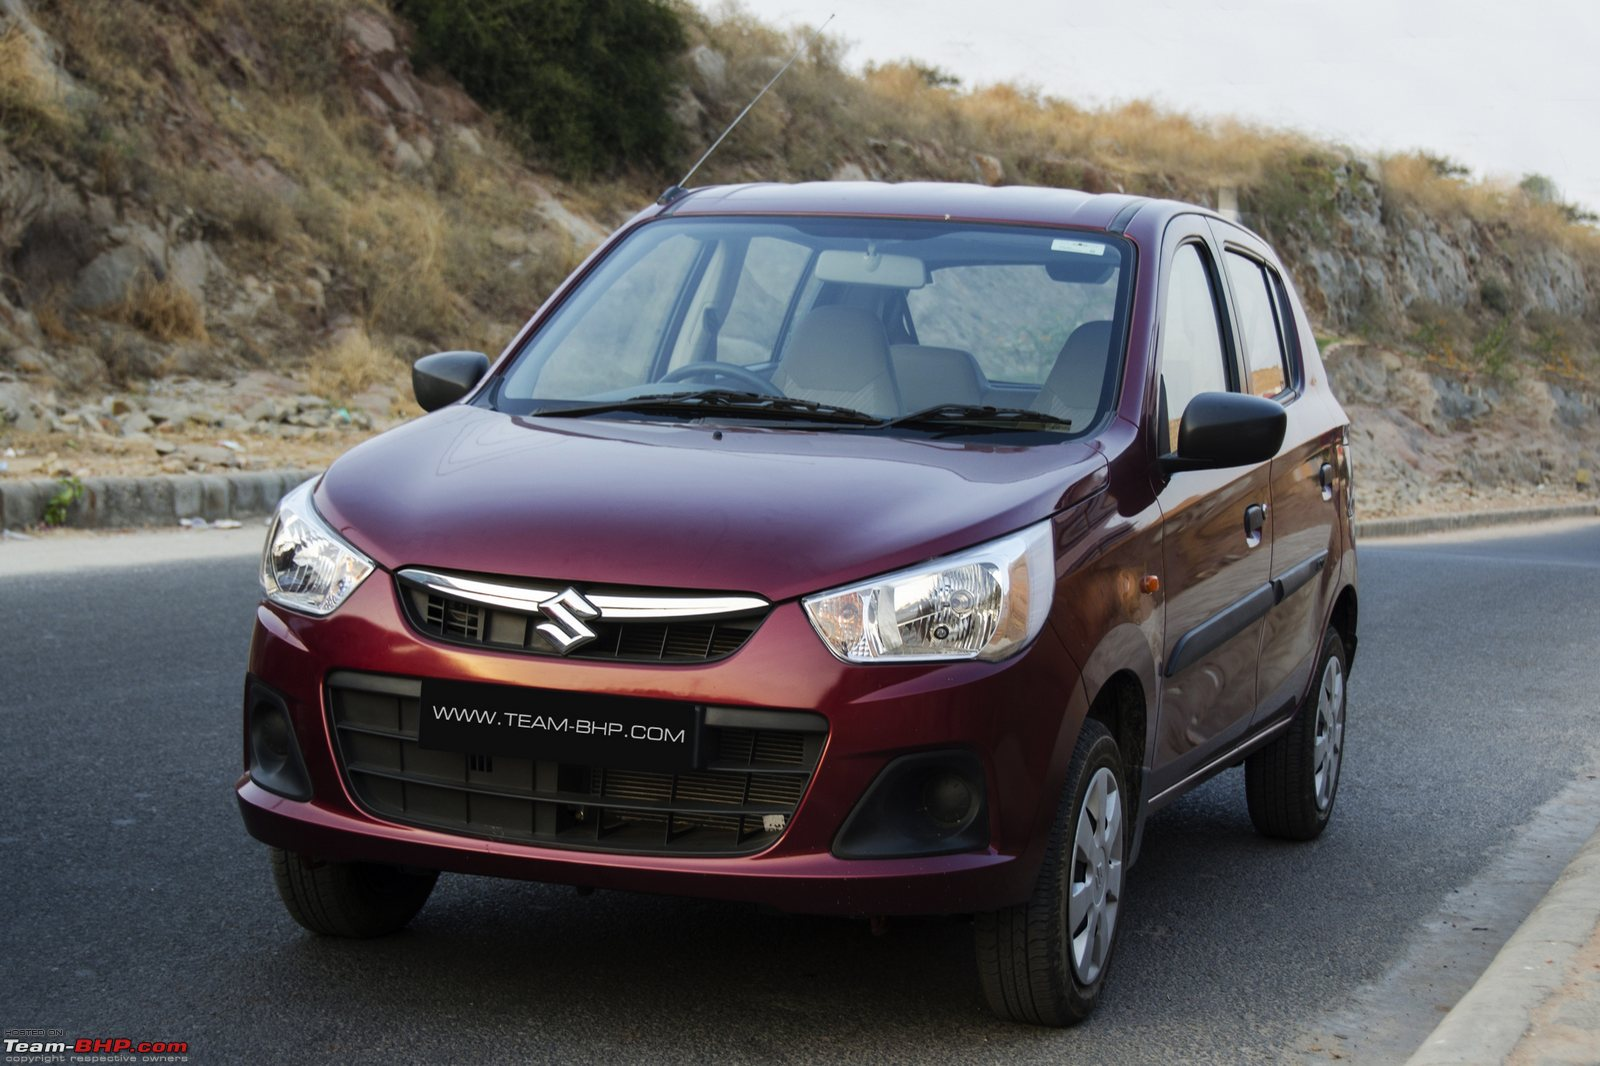 Maruti Alto K10 : Official Review - Team-BHP